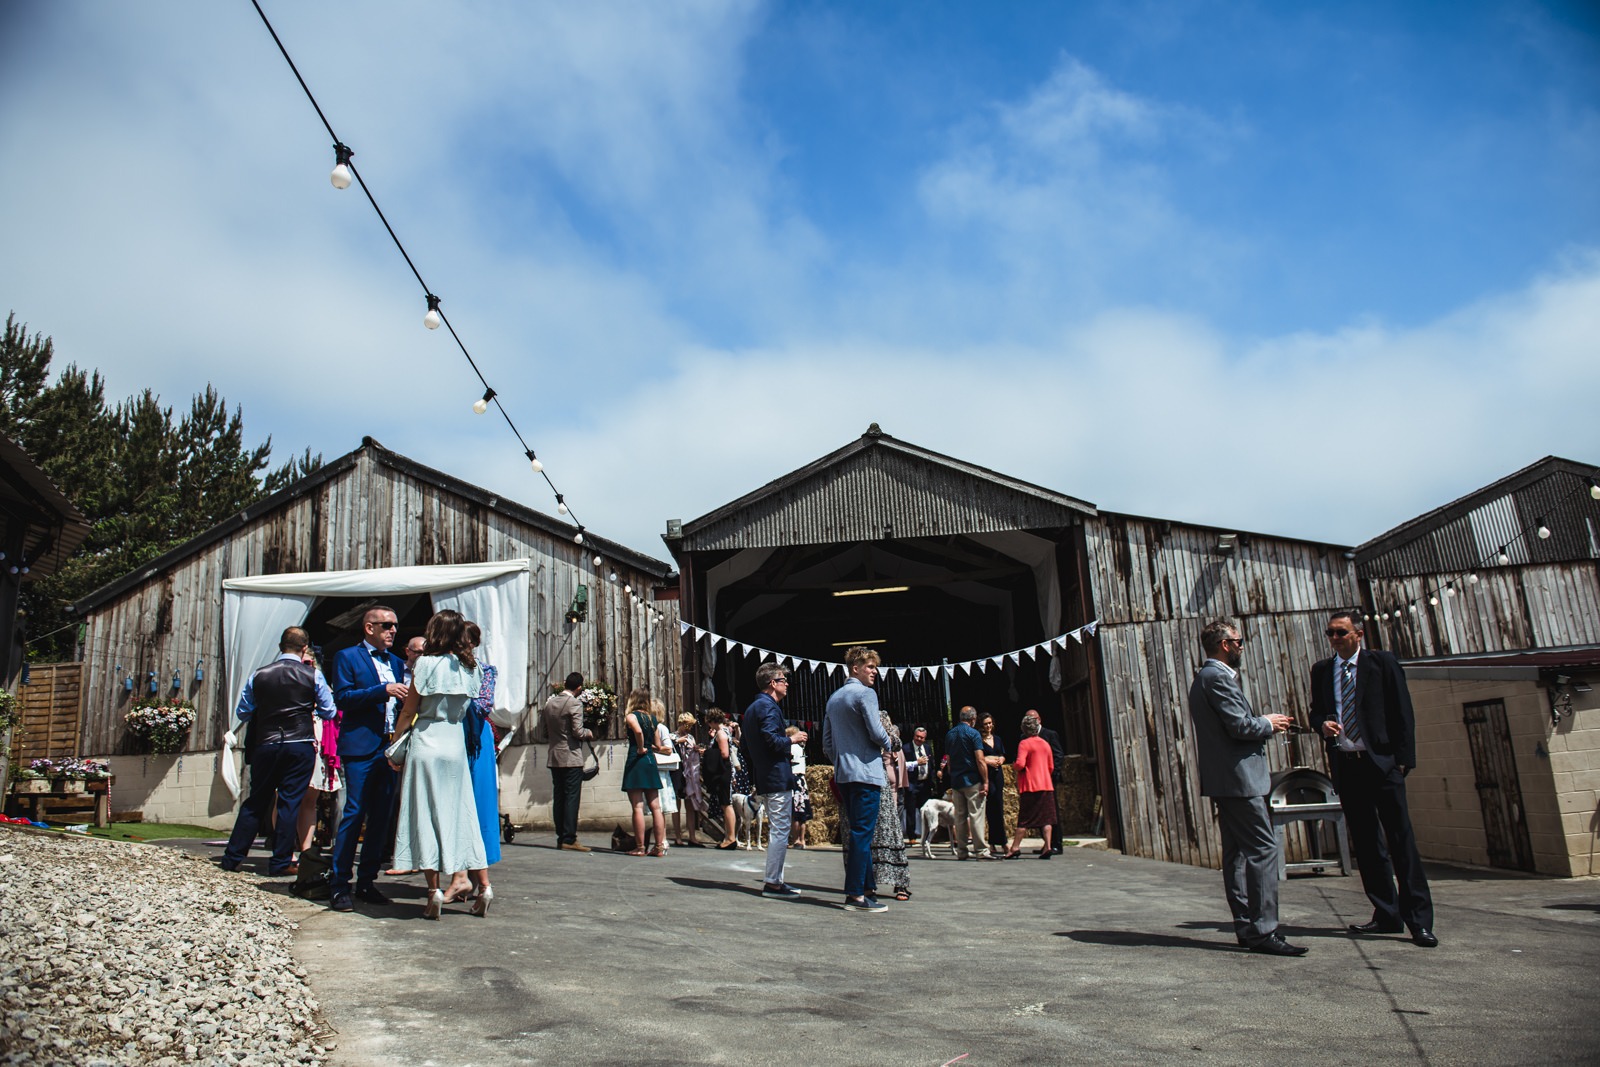 quirky Yorkshire barn wedding venue